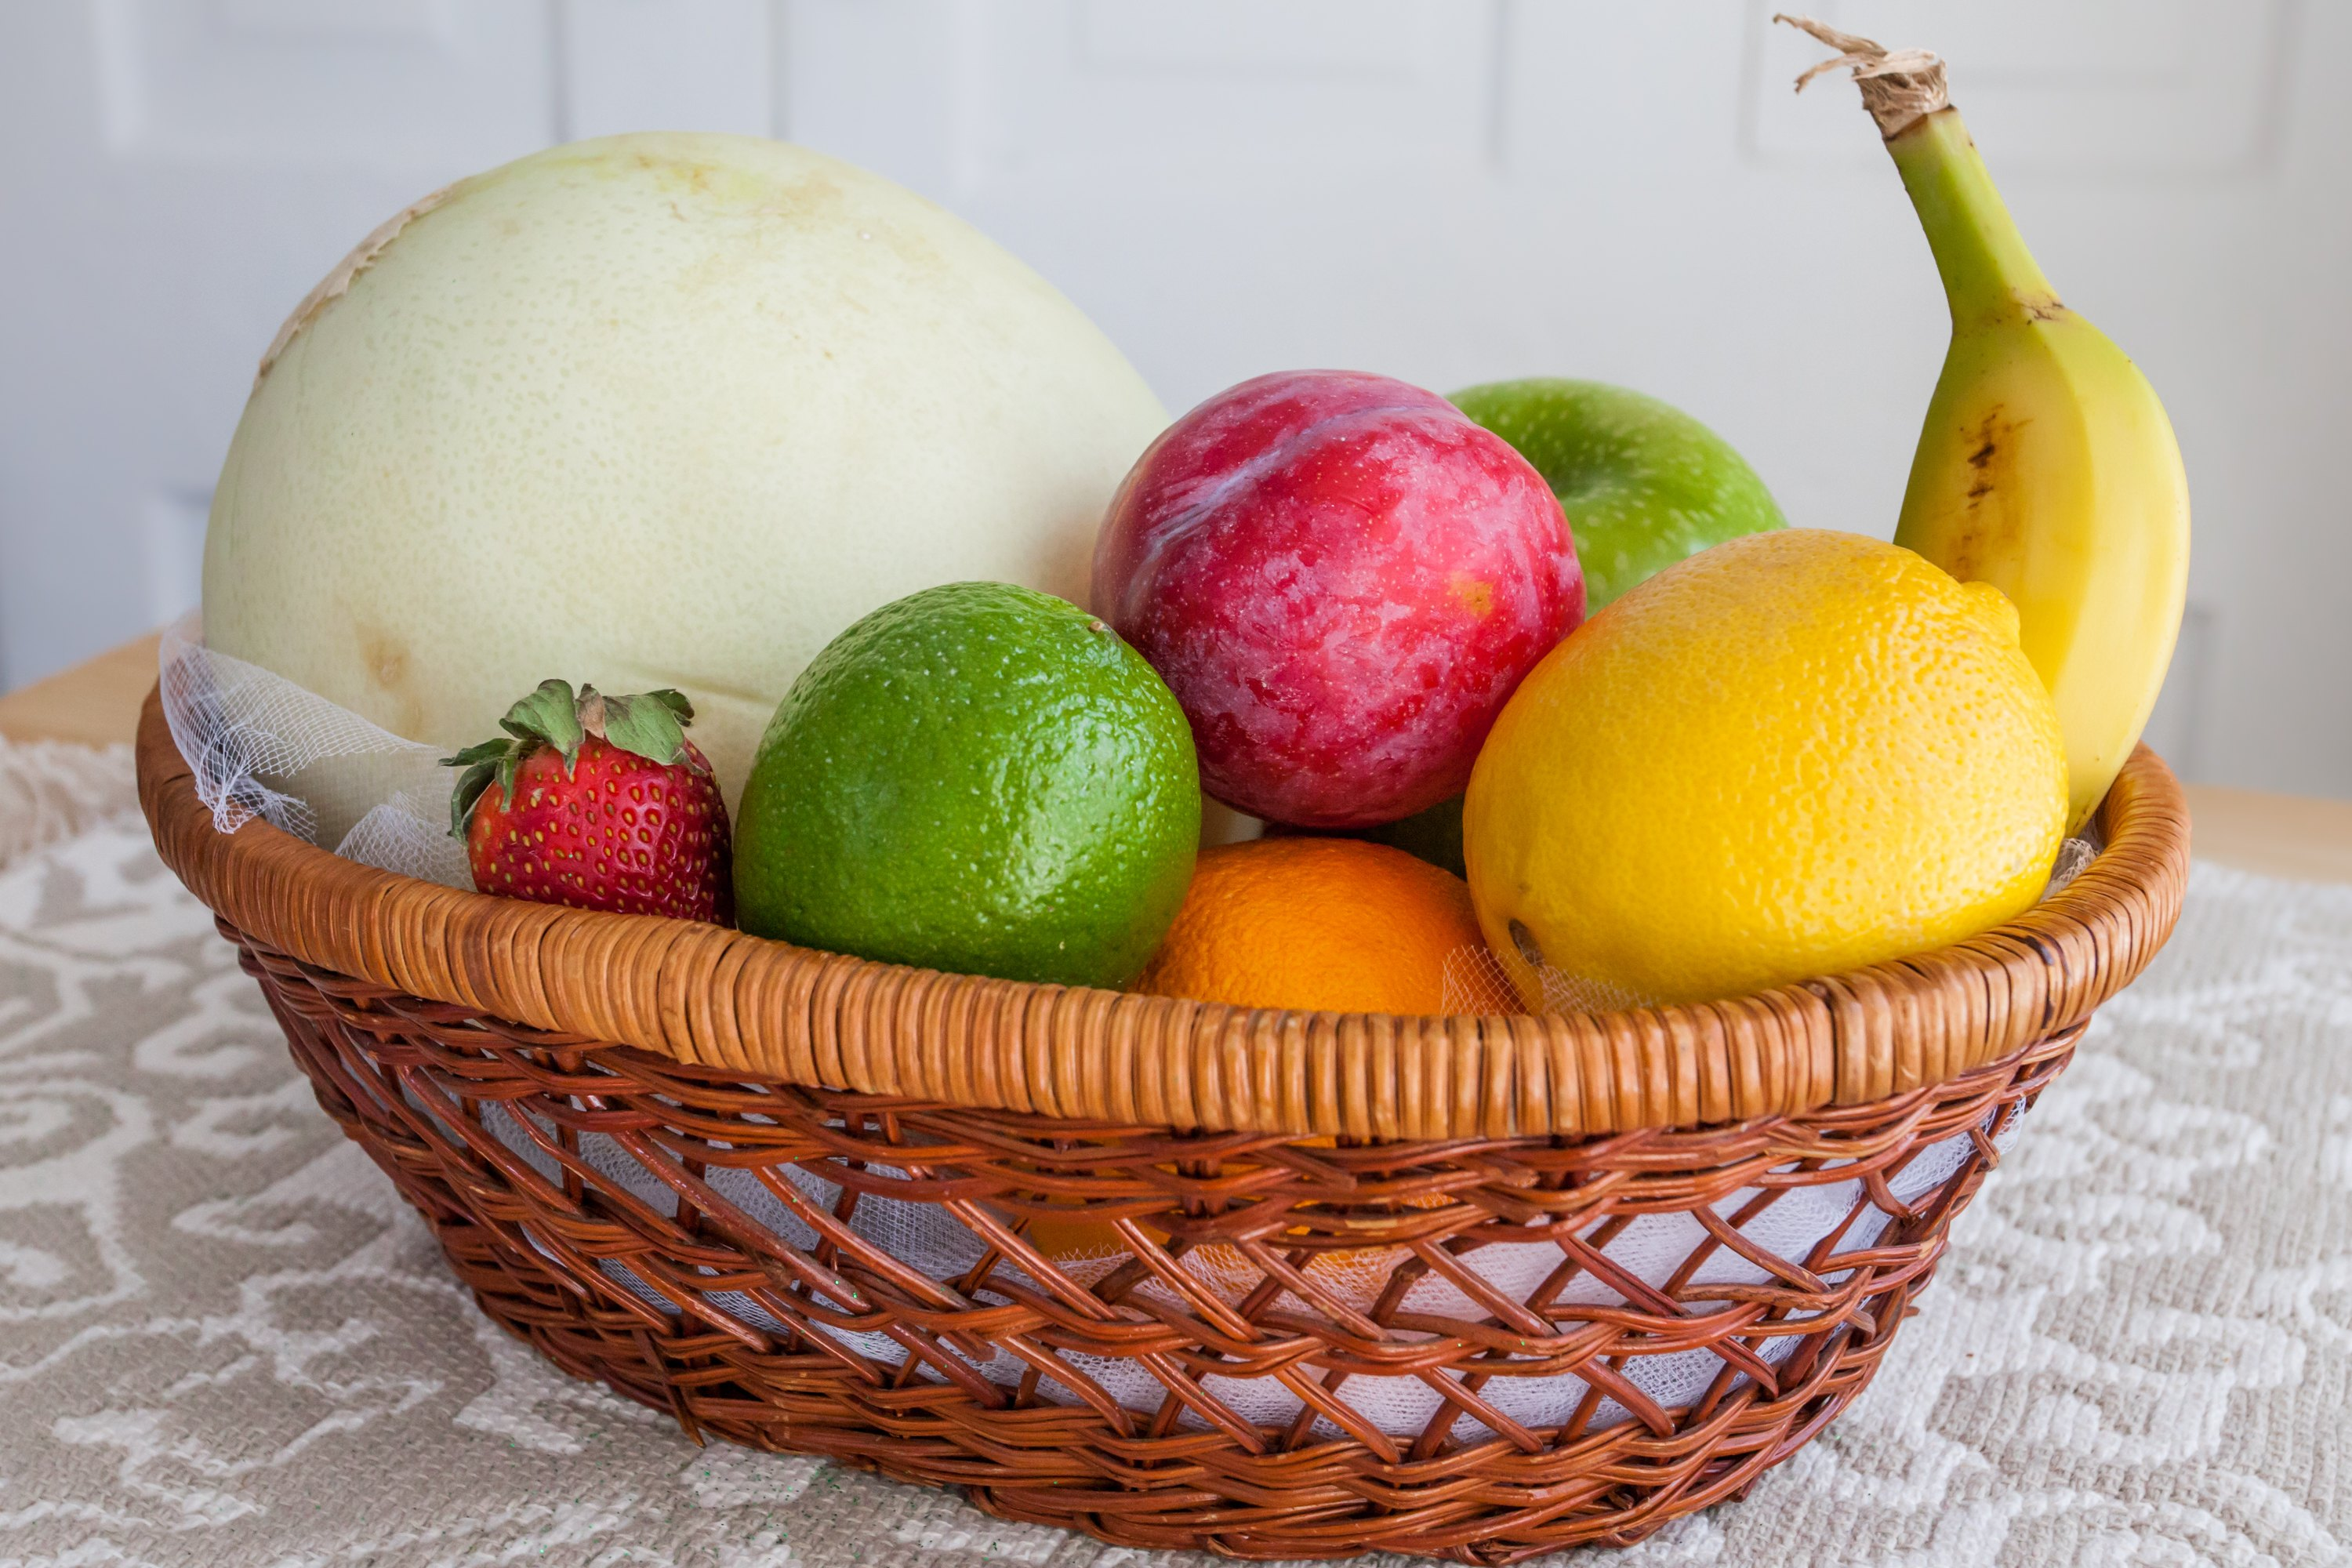 How To Make A Fruit Gift Basket With Pictures Ehow